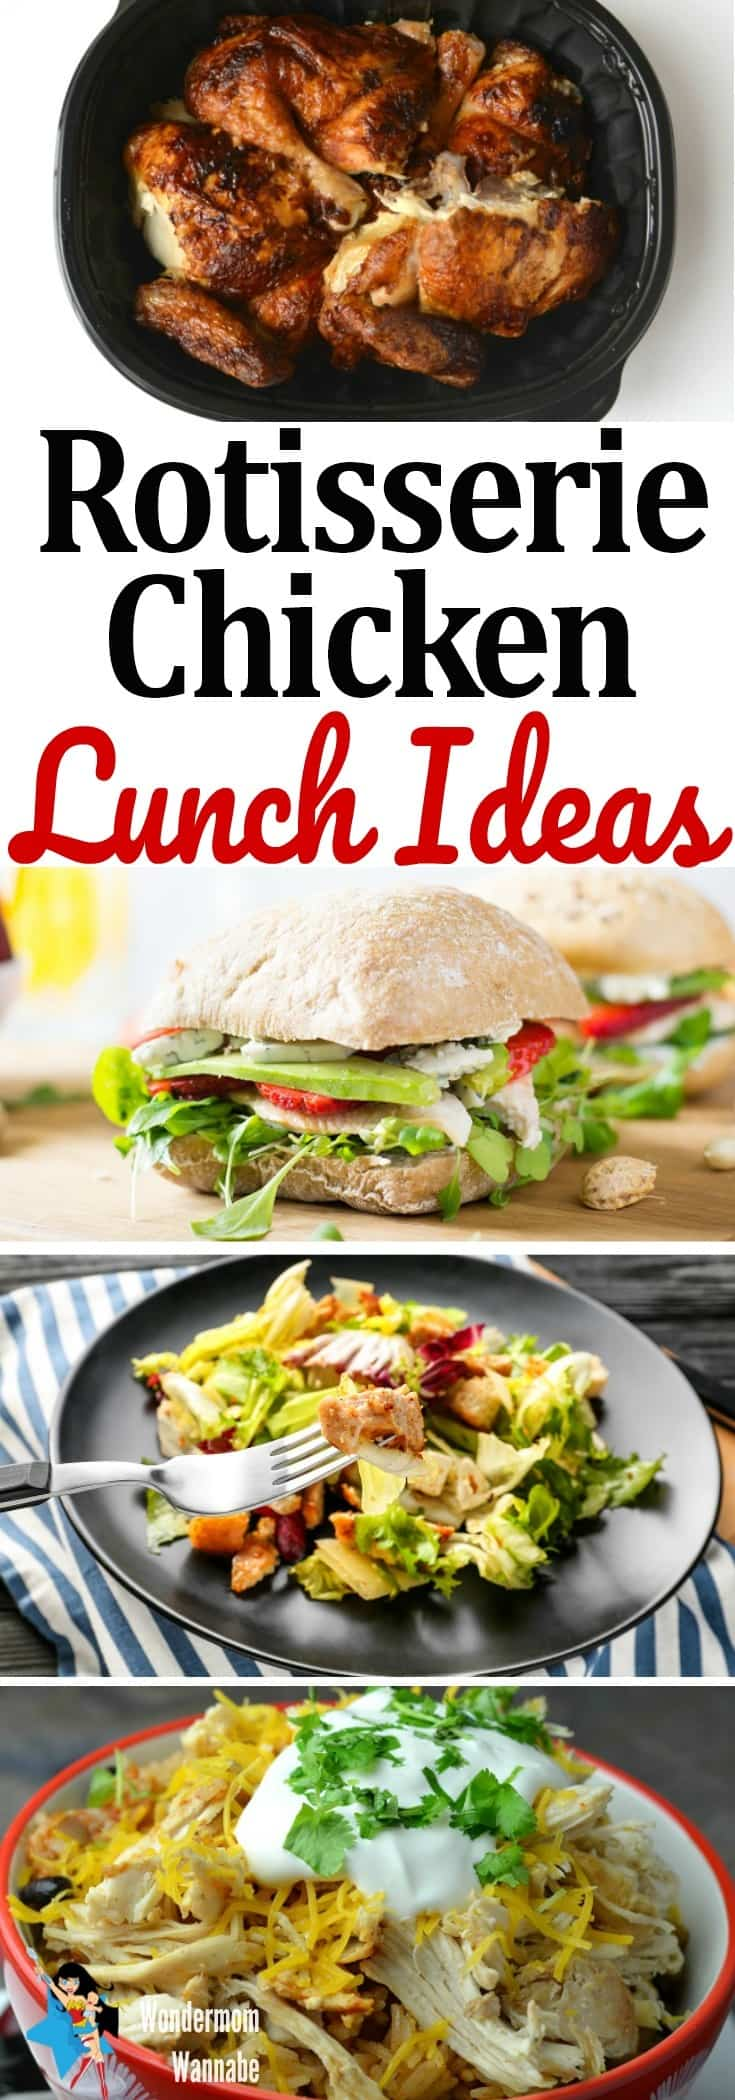 These rotisserie chicken lunch ideas show you how to take a rotisserie chicken and create a week's worth of tasty lunches.